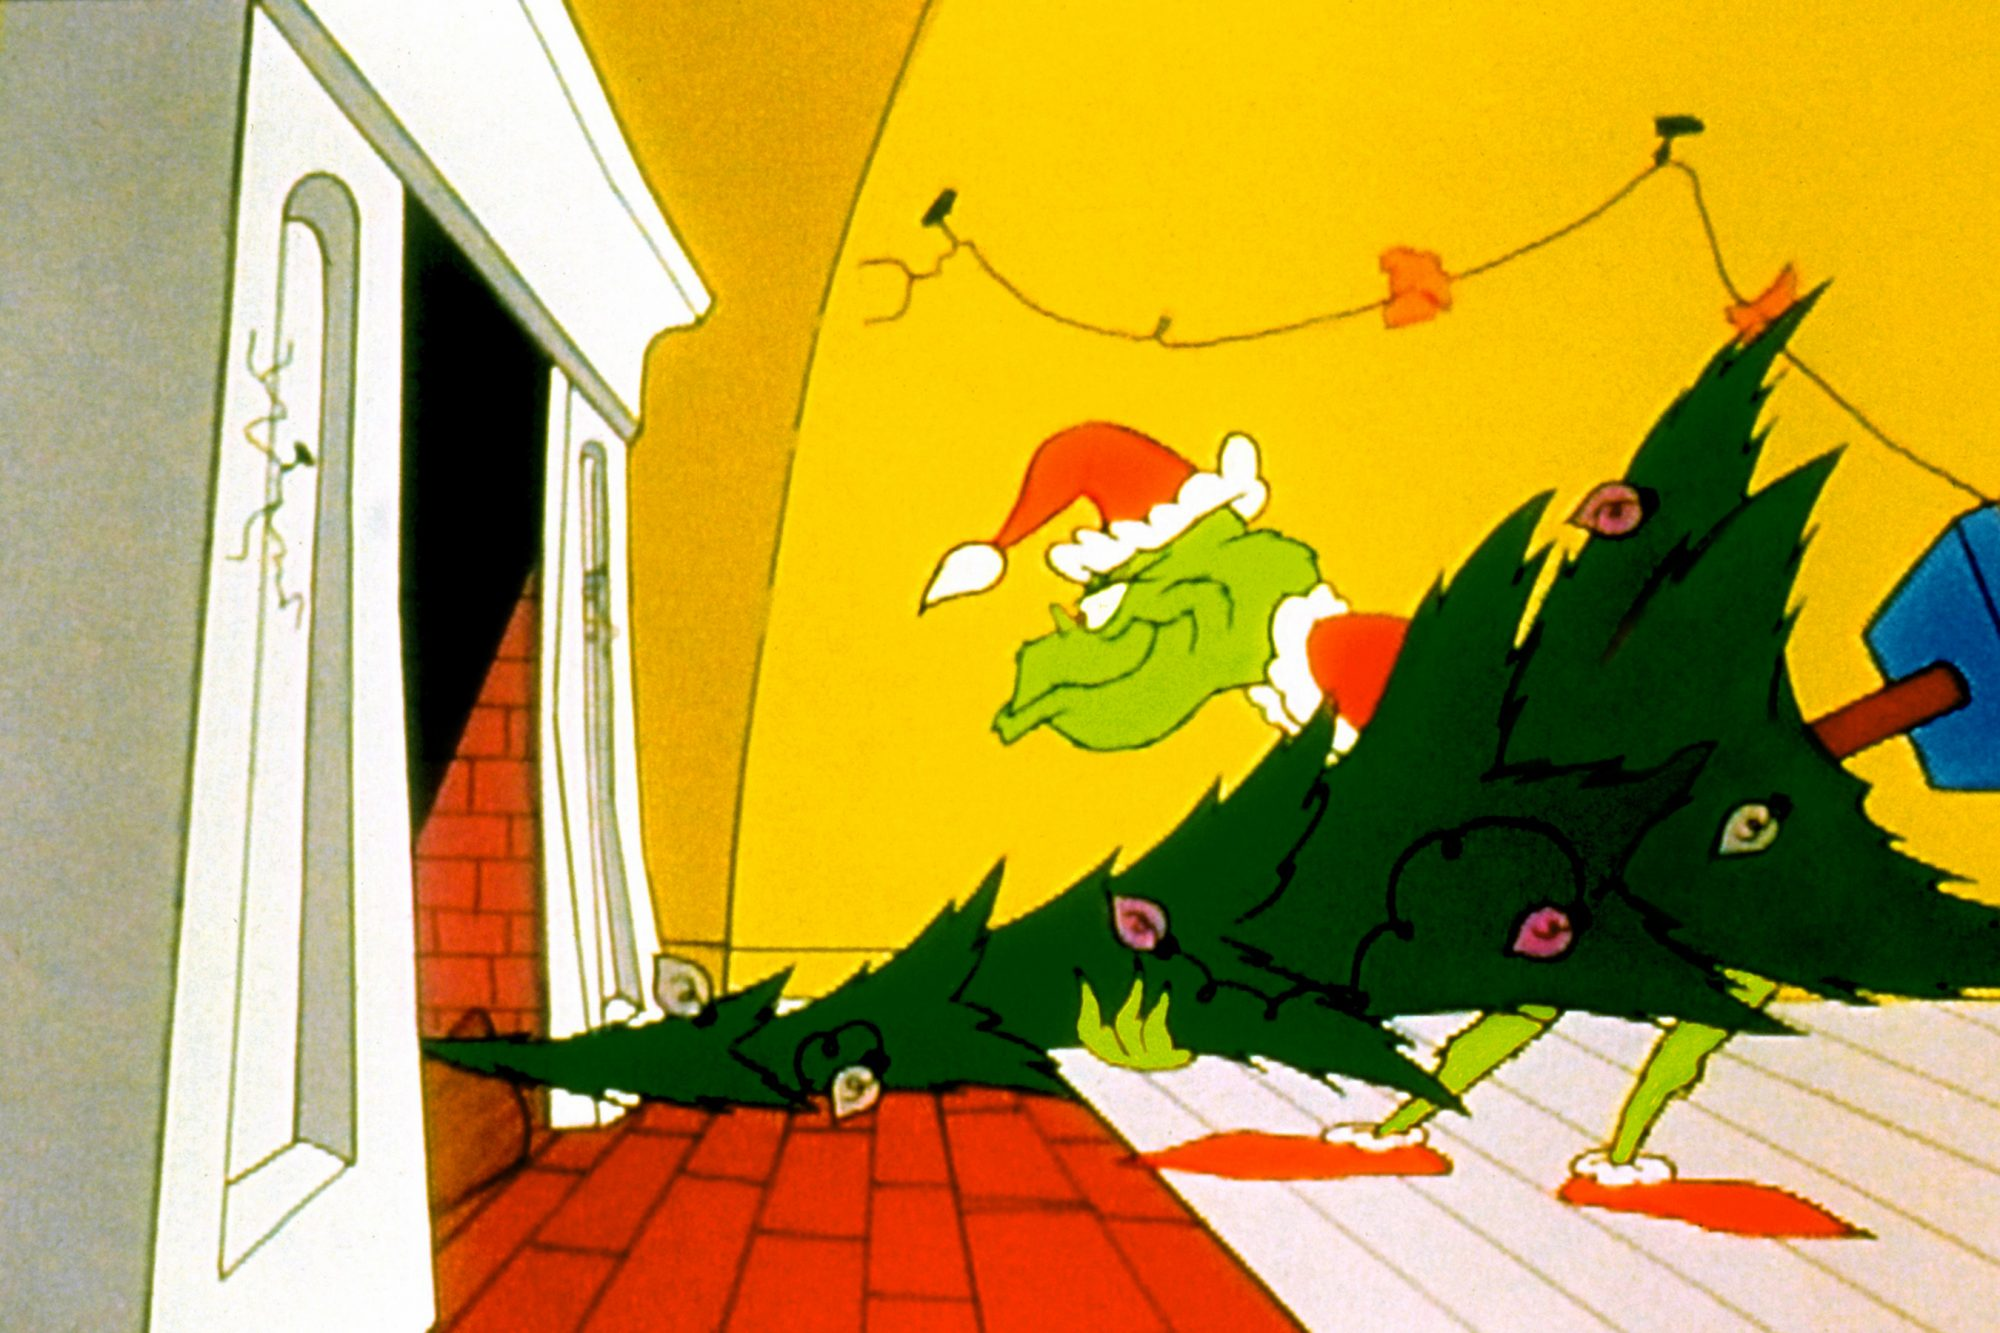 5. How the Grinch Stole Christmas (1966)